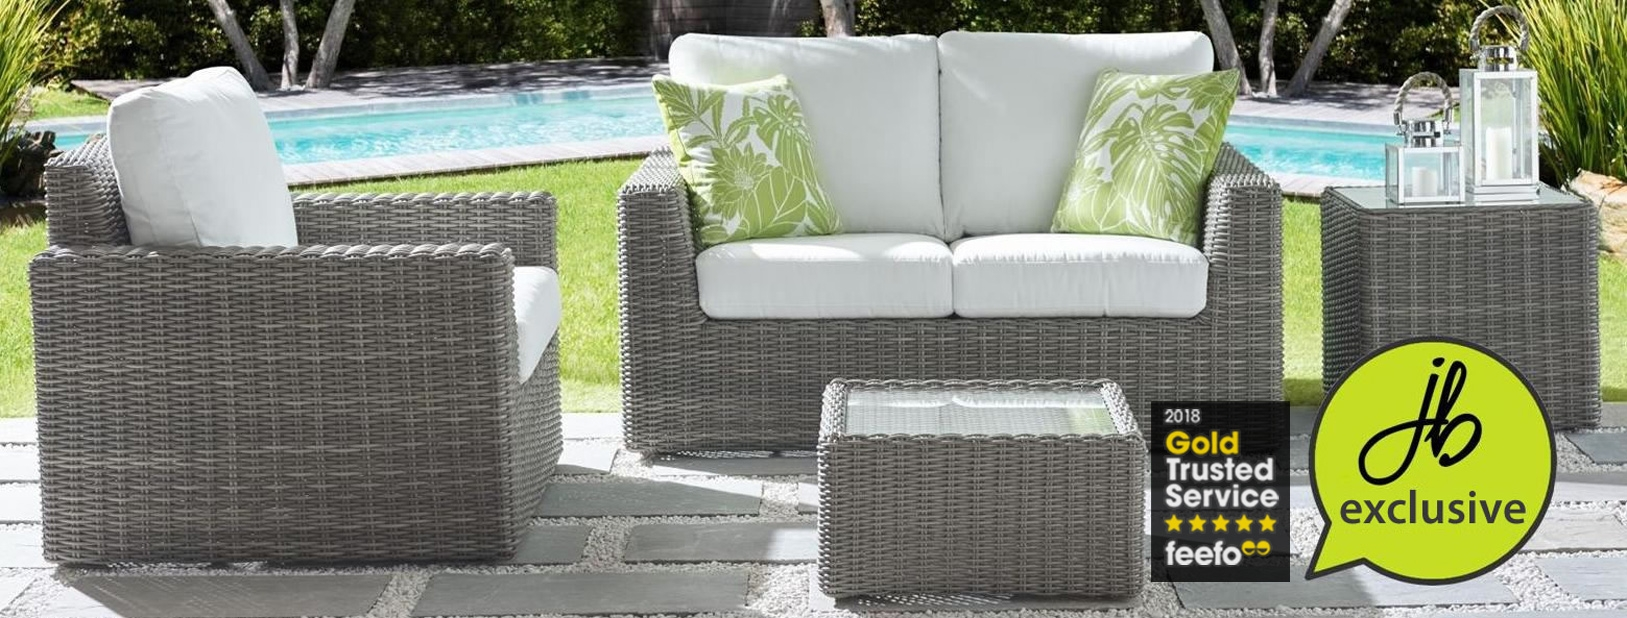 Upholstered Garden Furniture